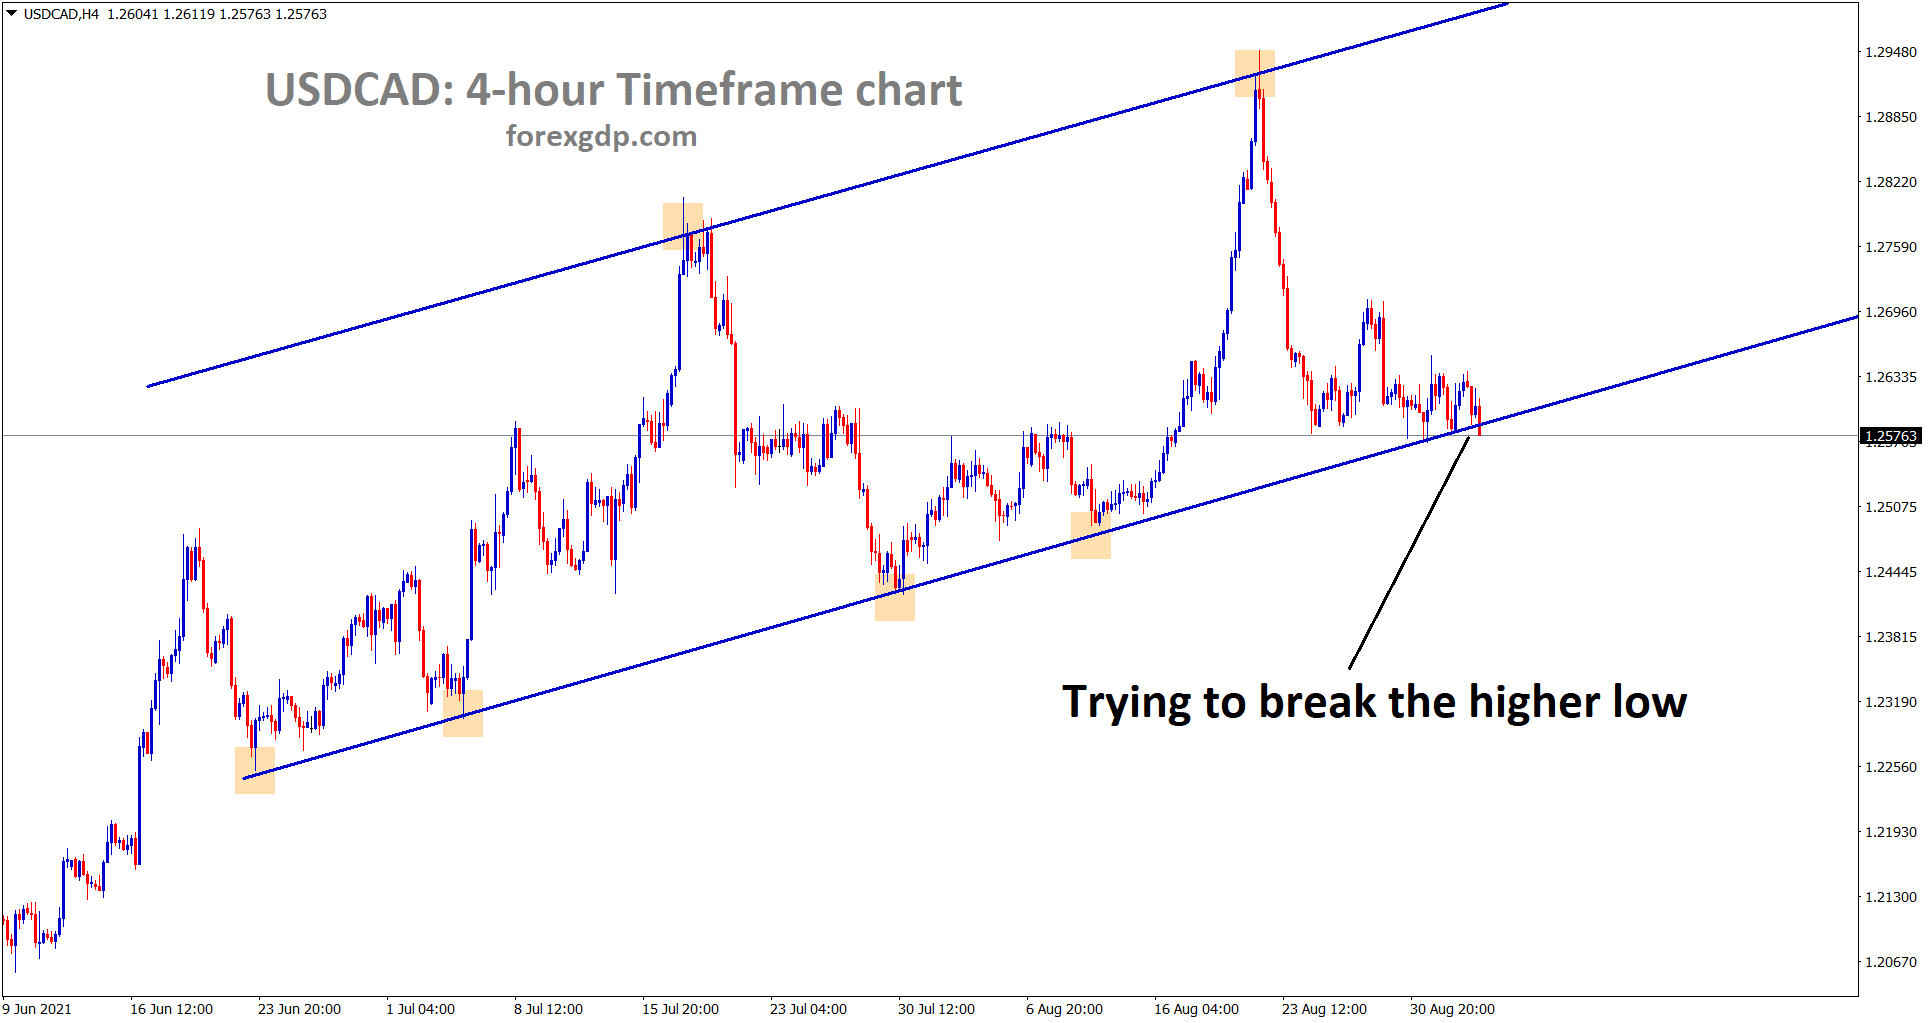 USDCAD is trying to break the higher low area wait for the confirmation of breakout or reversal